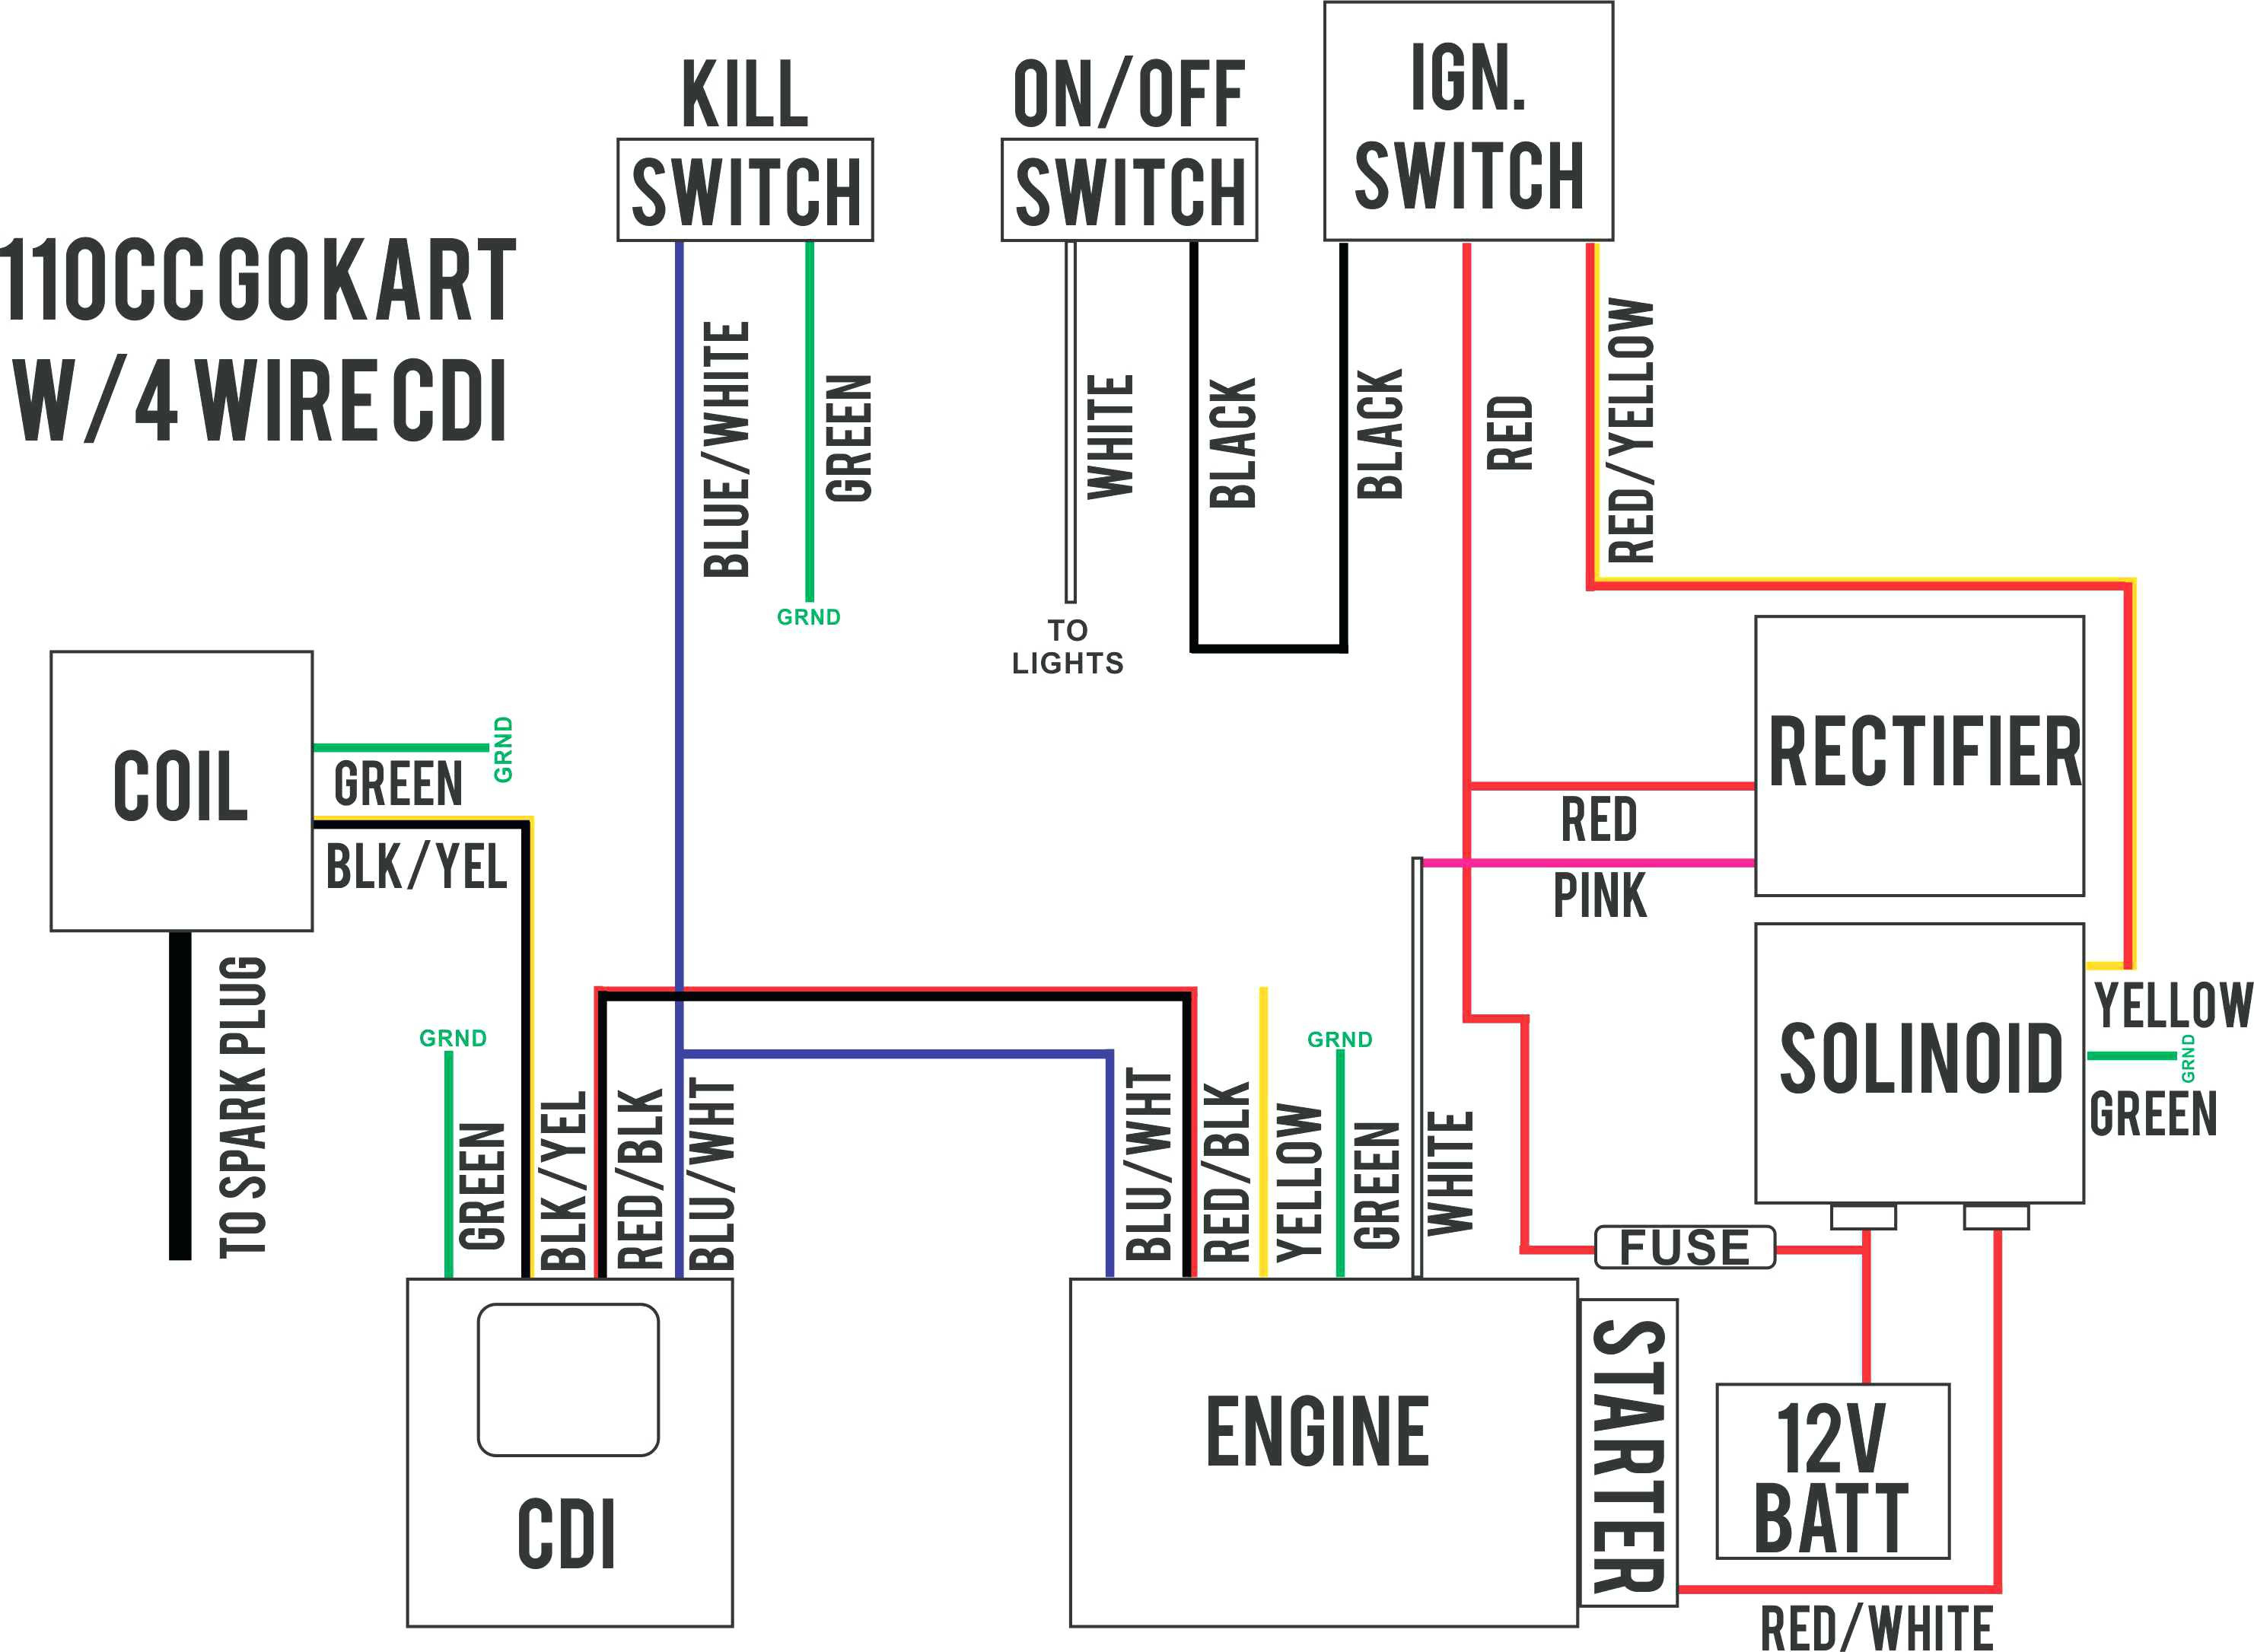 Car alarm wiring diagram sample wiring diagram sample car alarm wiring diagram collection wiring diagram intruder alarm valid car security system wiring diagram asfbconference2016 Image collections